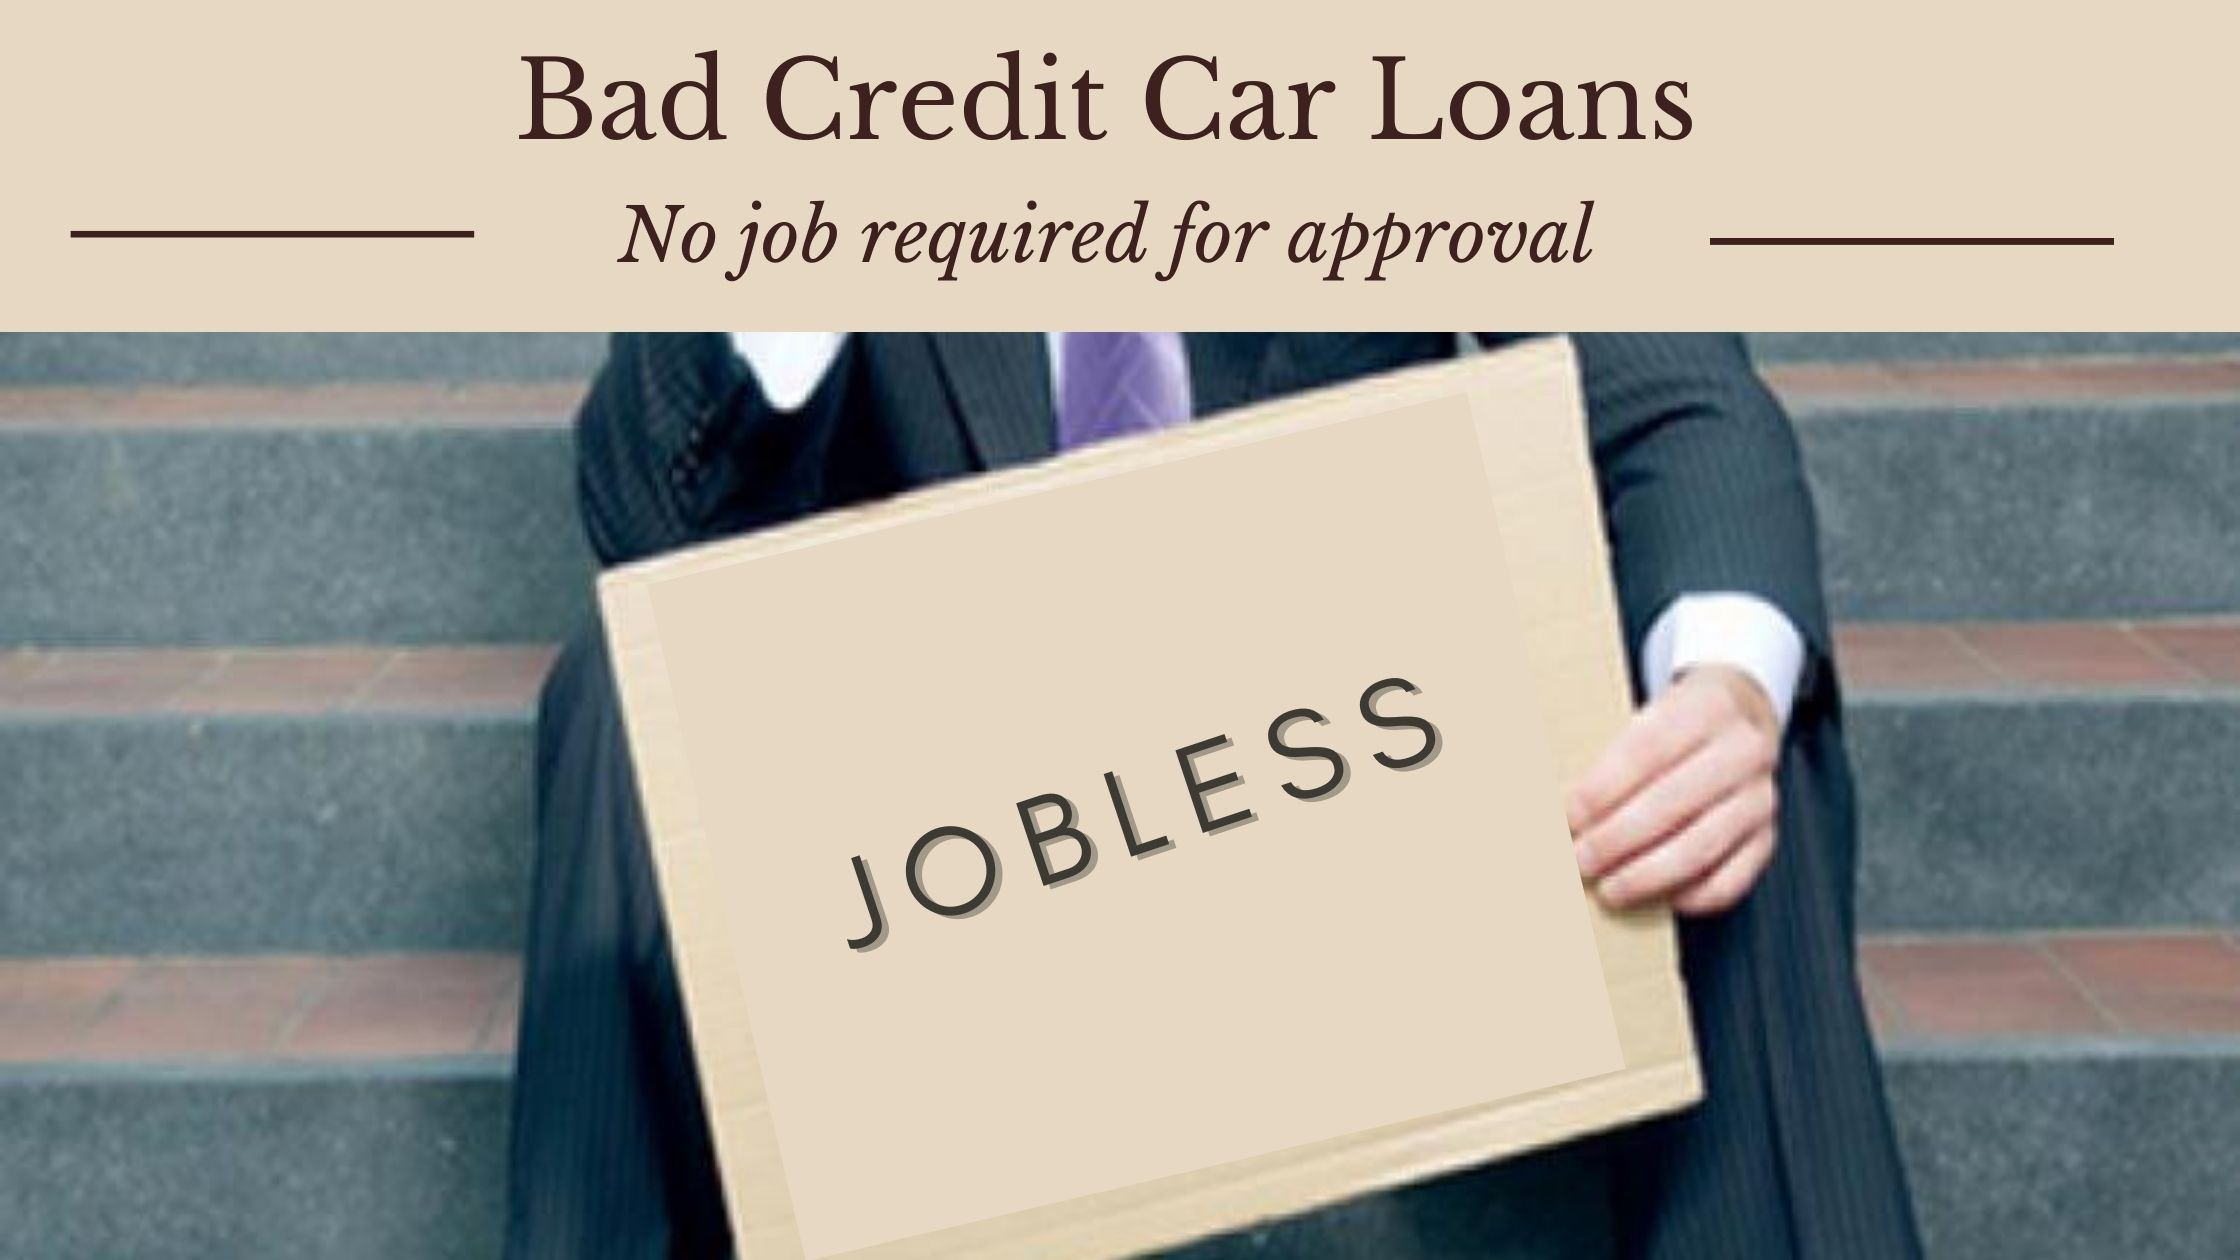 How To Get A Loan Without A Job And Bad Credit